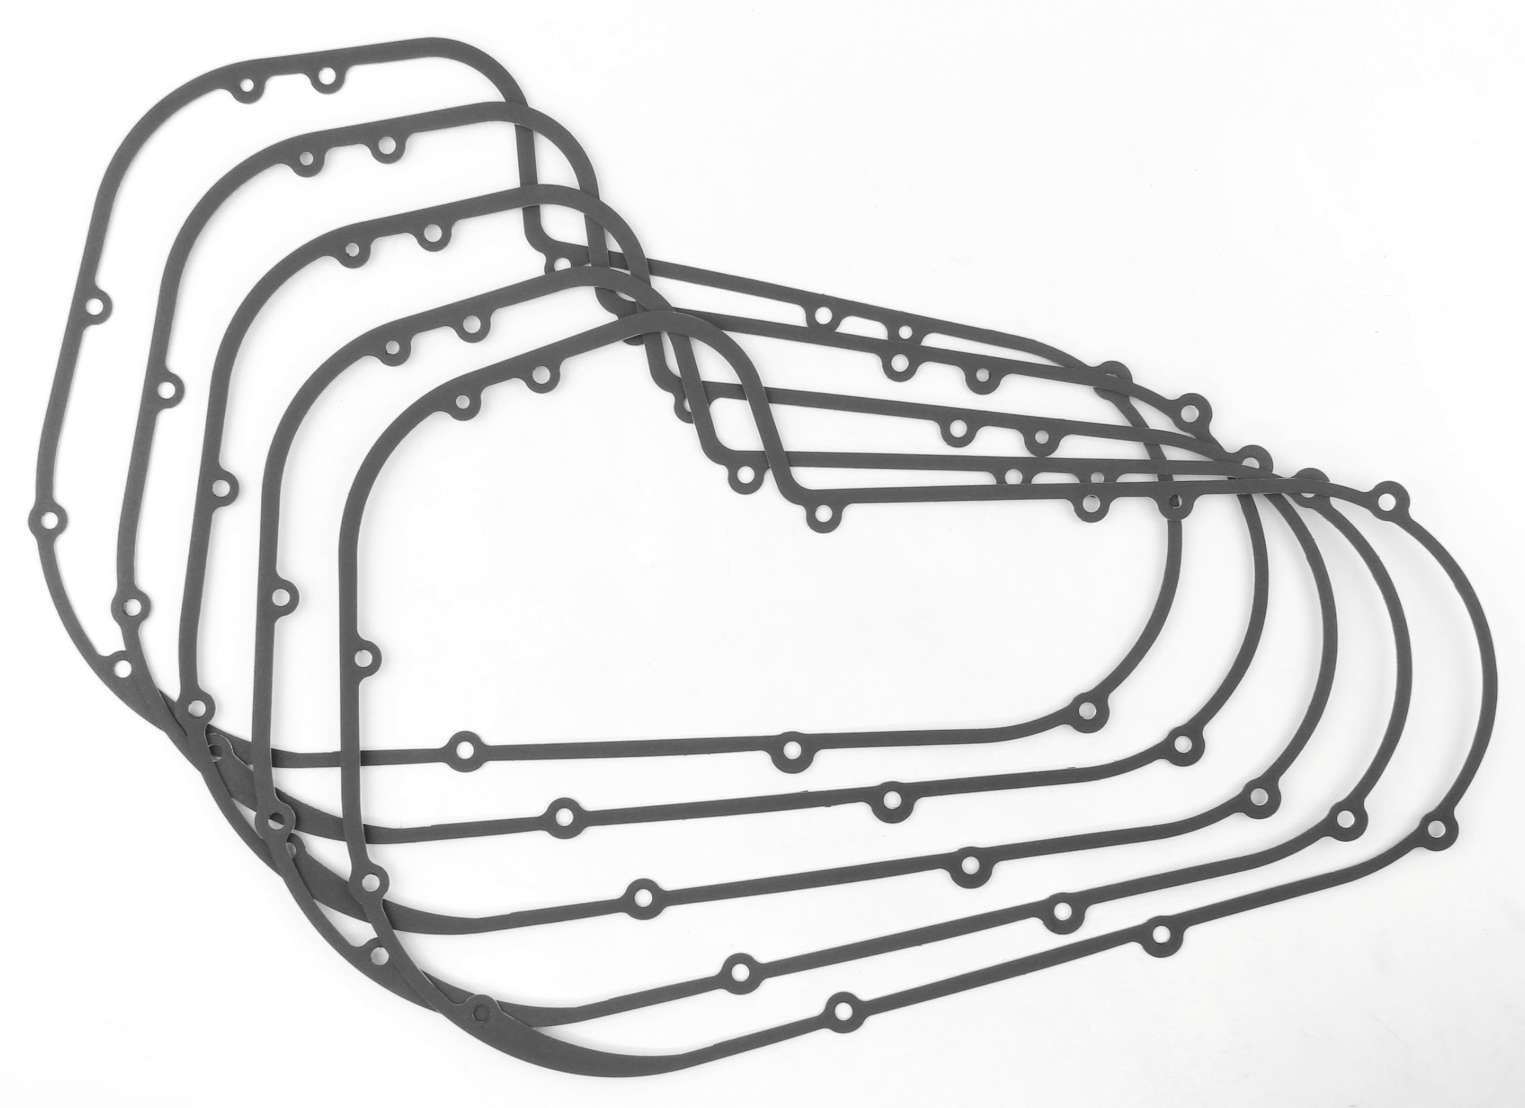 Twin Power Primary Gasket - 5pk. C9308F5TP